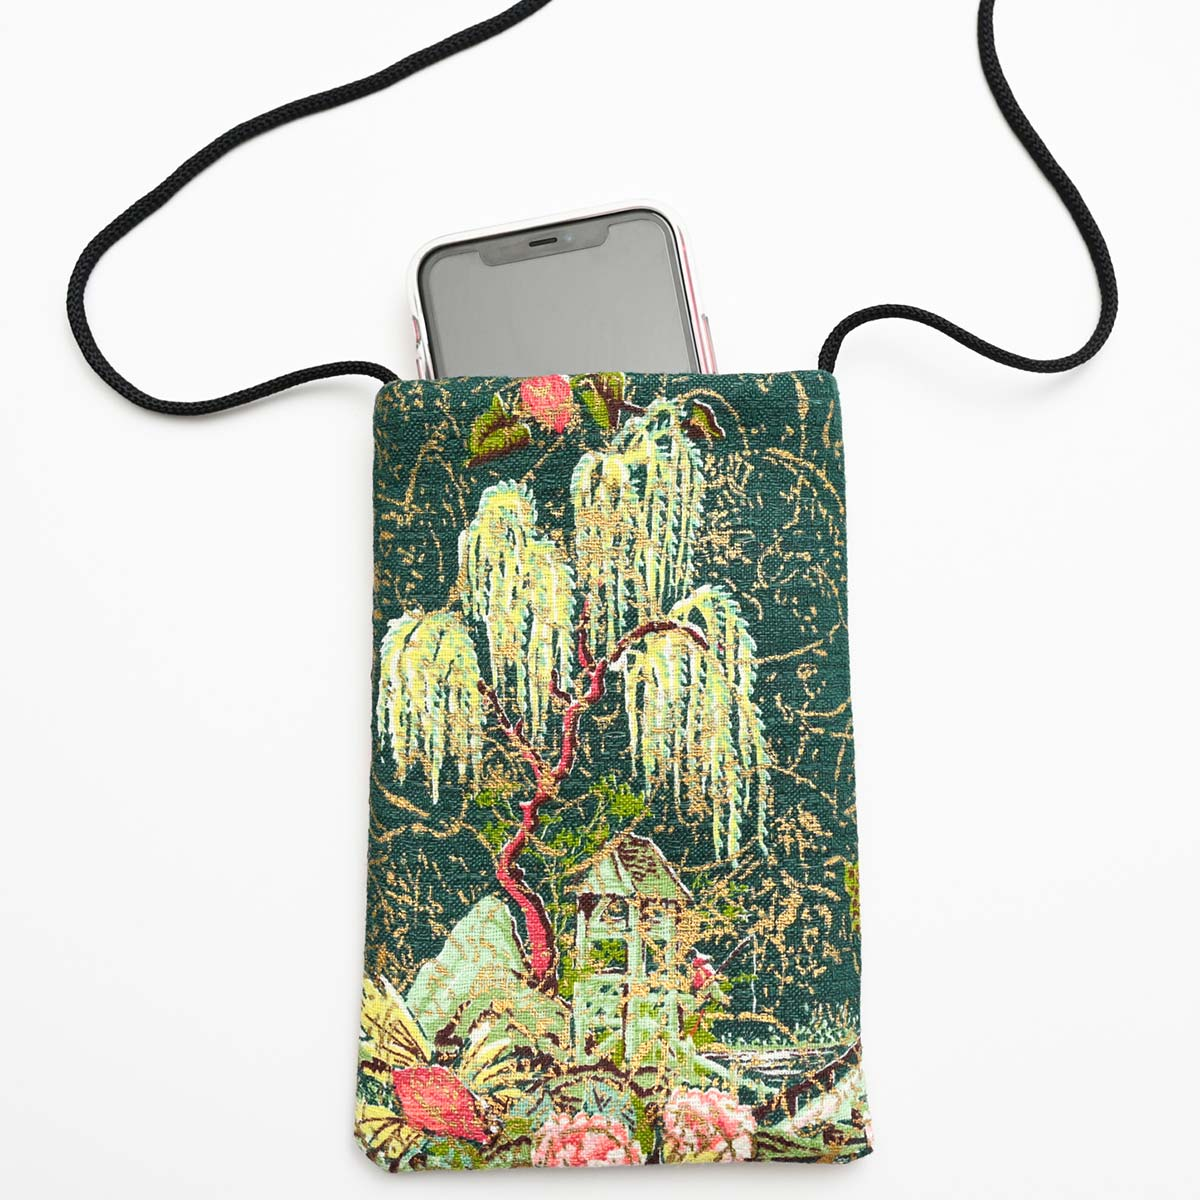 cellphone bag asian motif on green